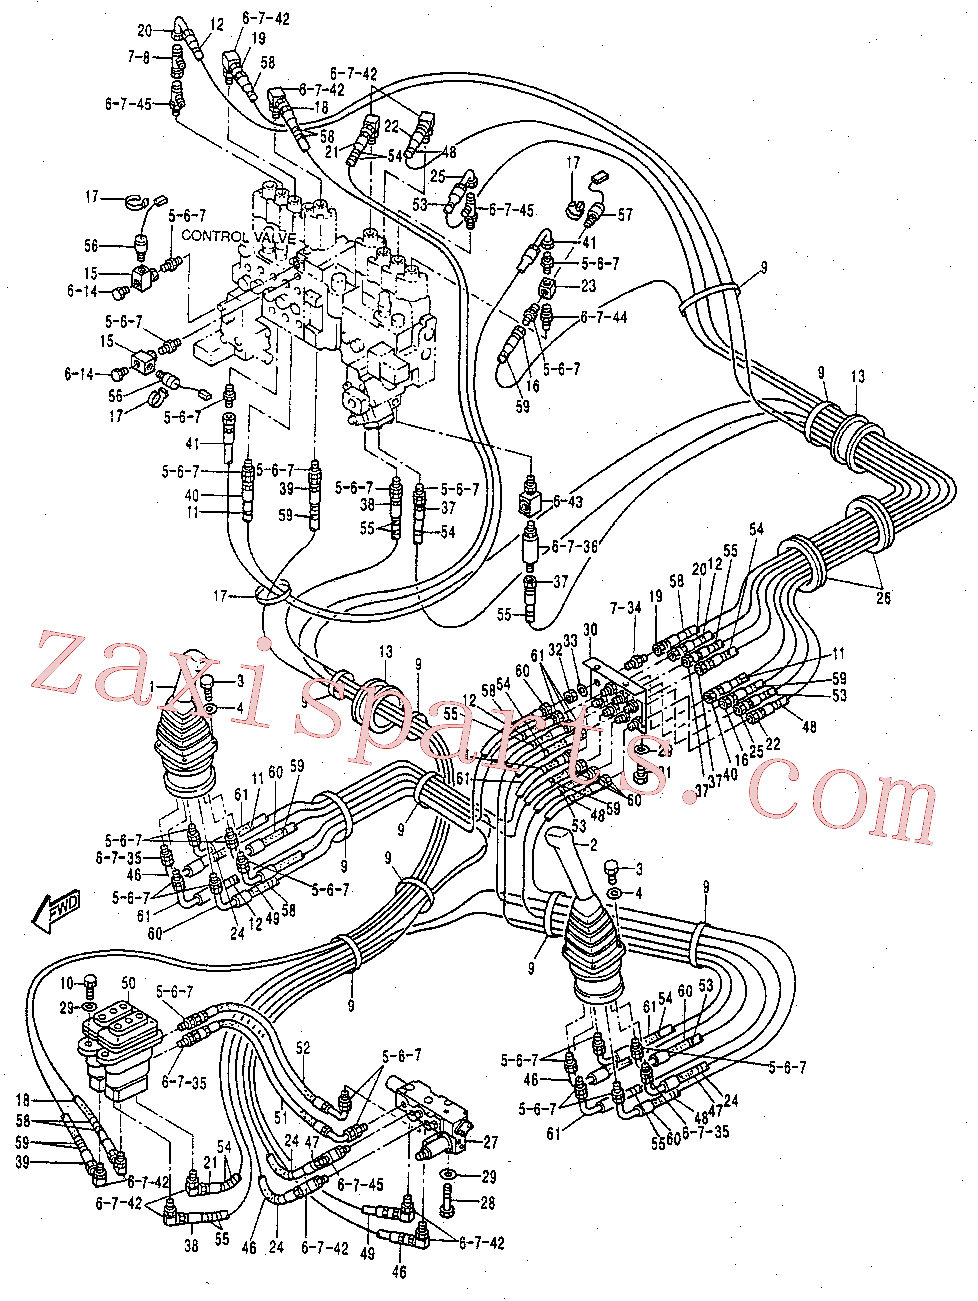 CAT 113-6885 for 325B L Excavator(EXC) hydraulic system 119-2390 Assembly